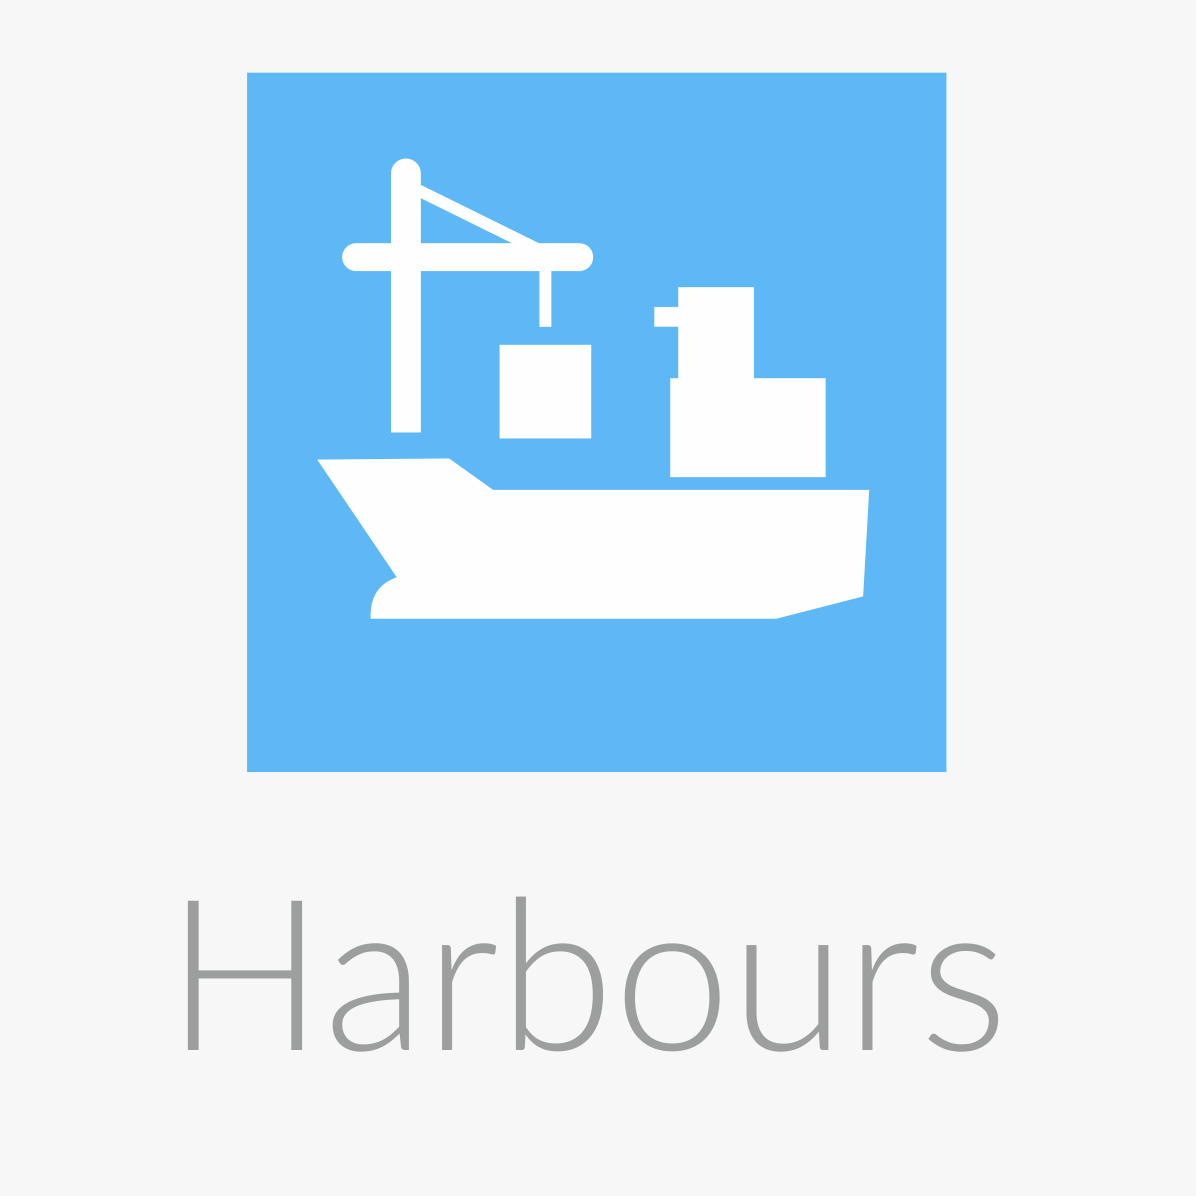 Harbours.png